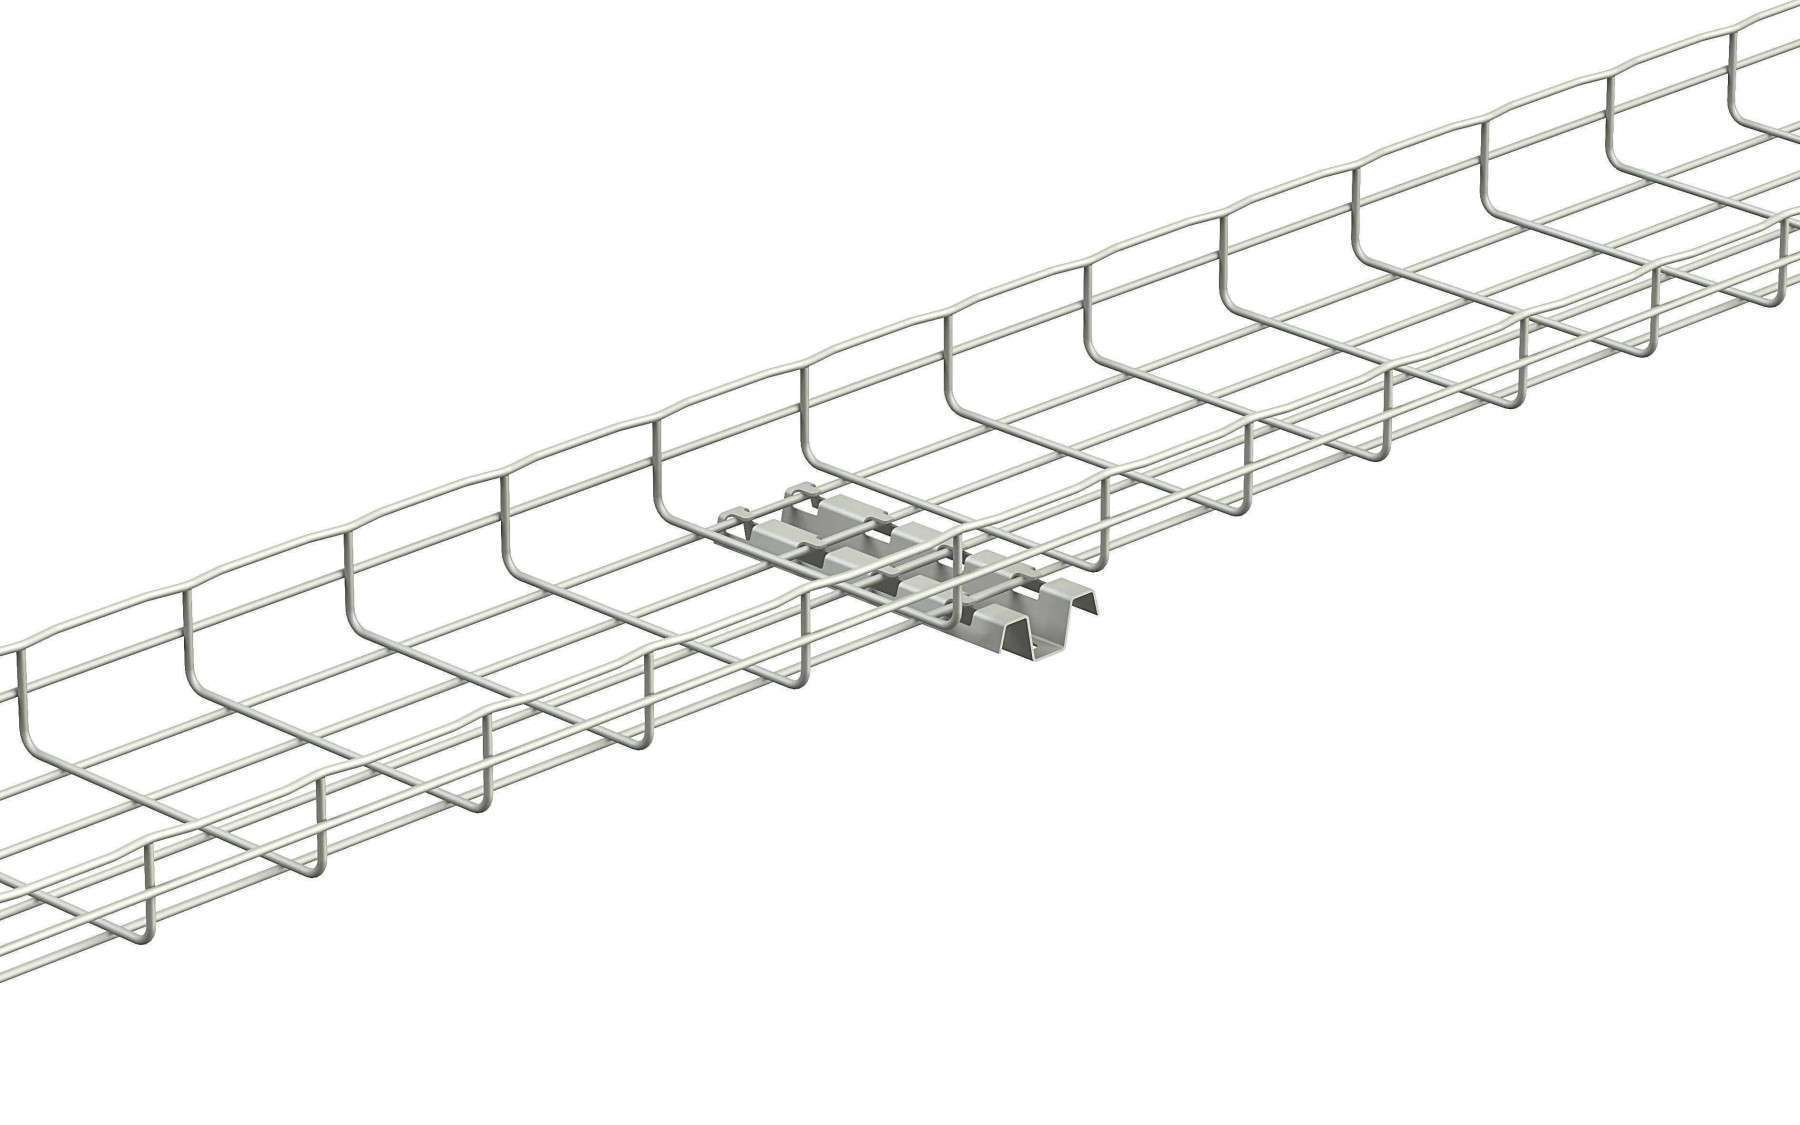 RCSN3000GS Legrand Cable Management RAIL CSN 013030